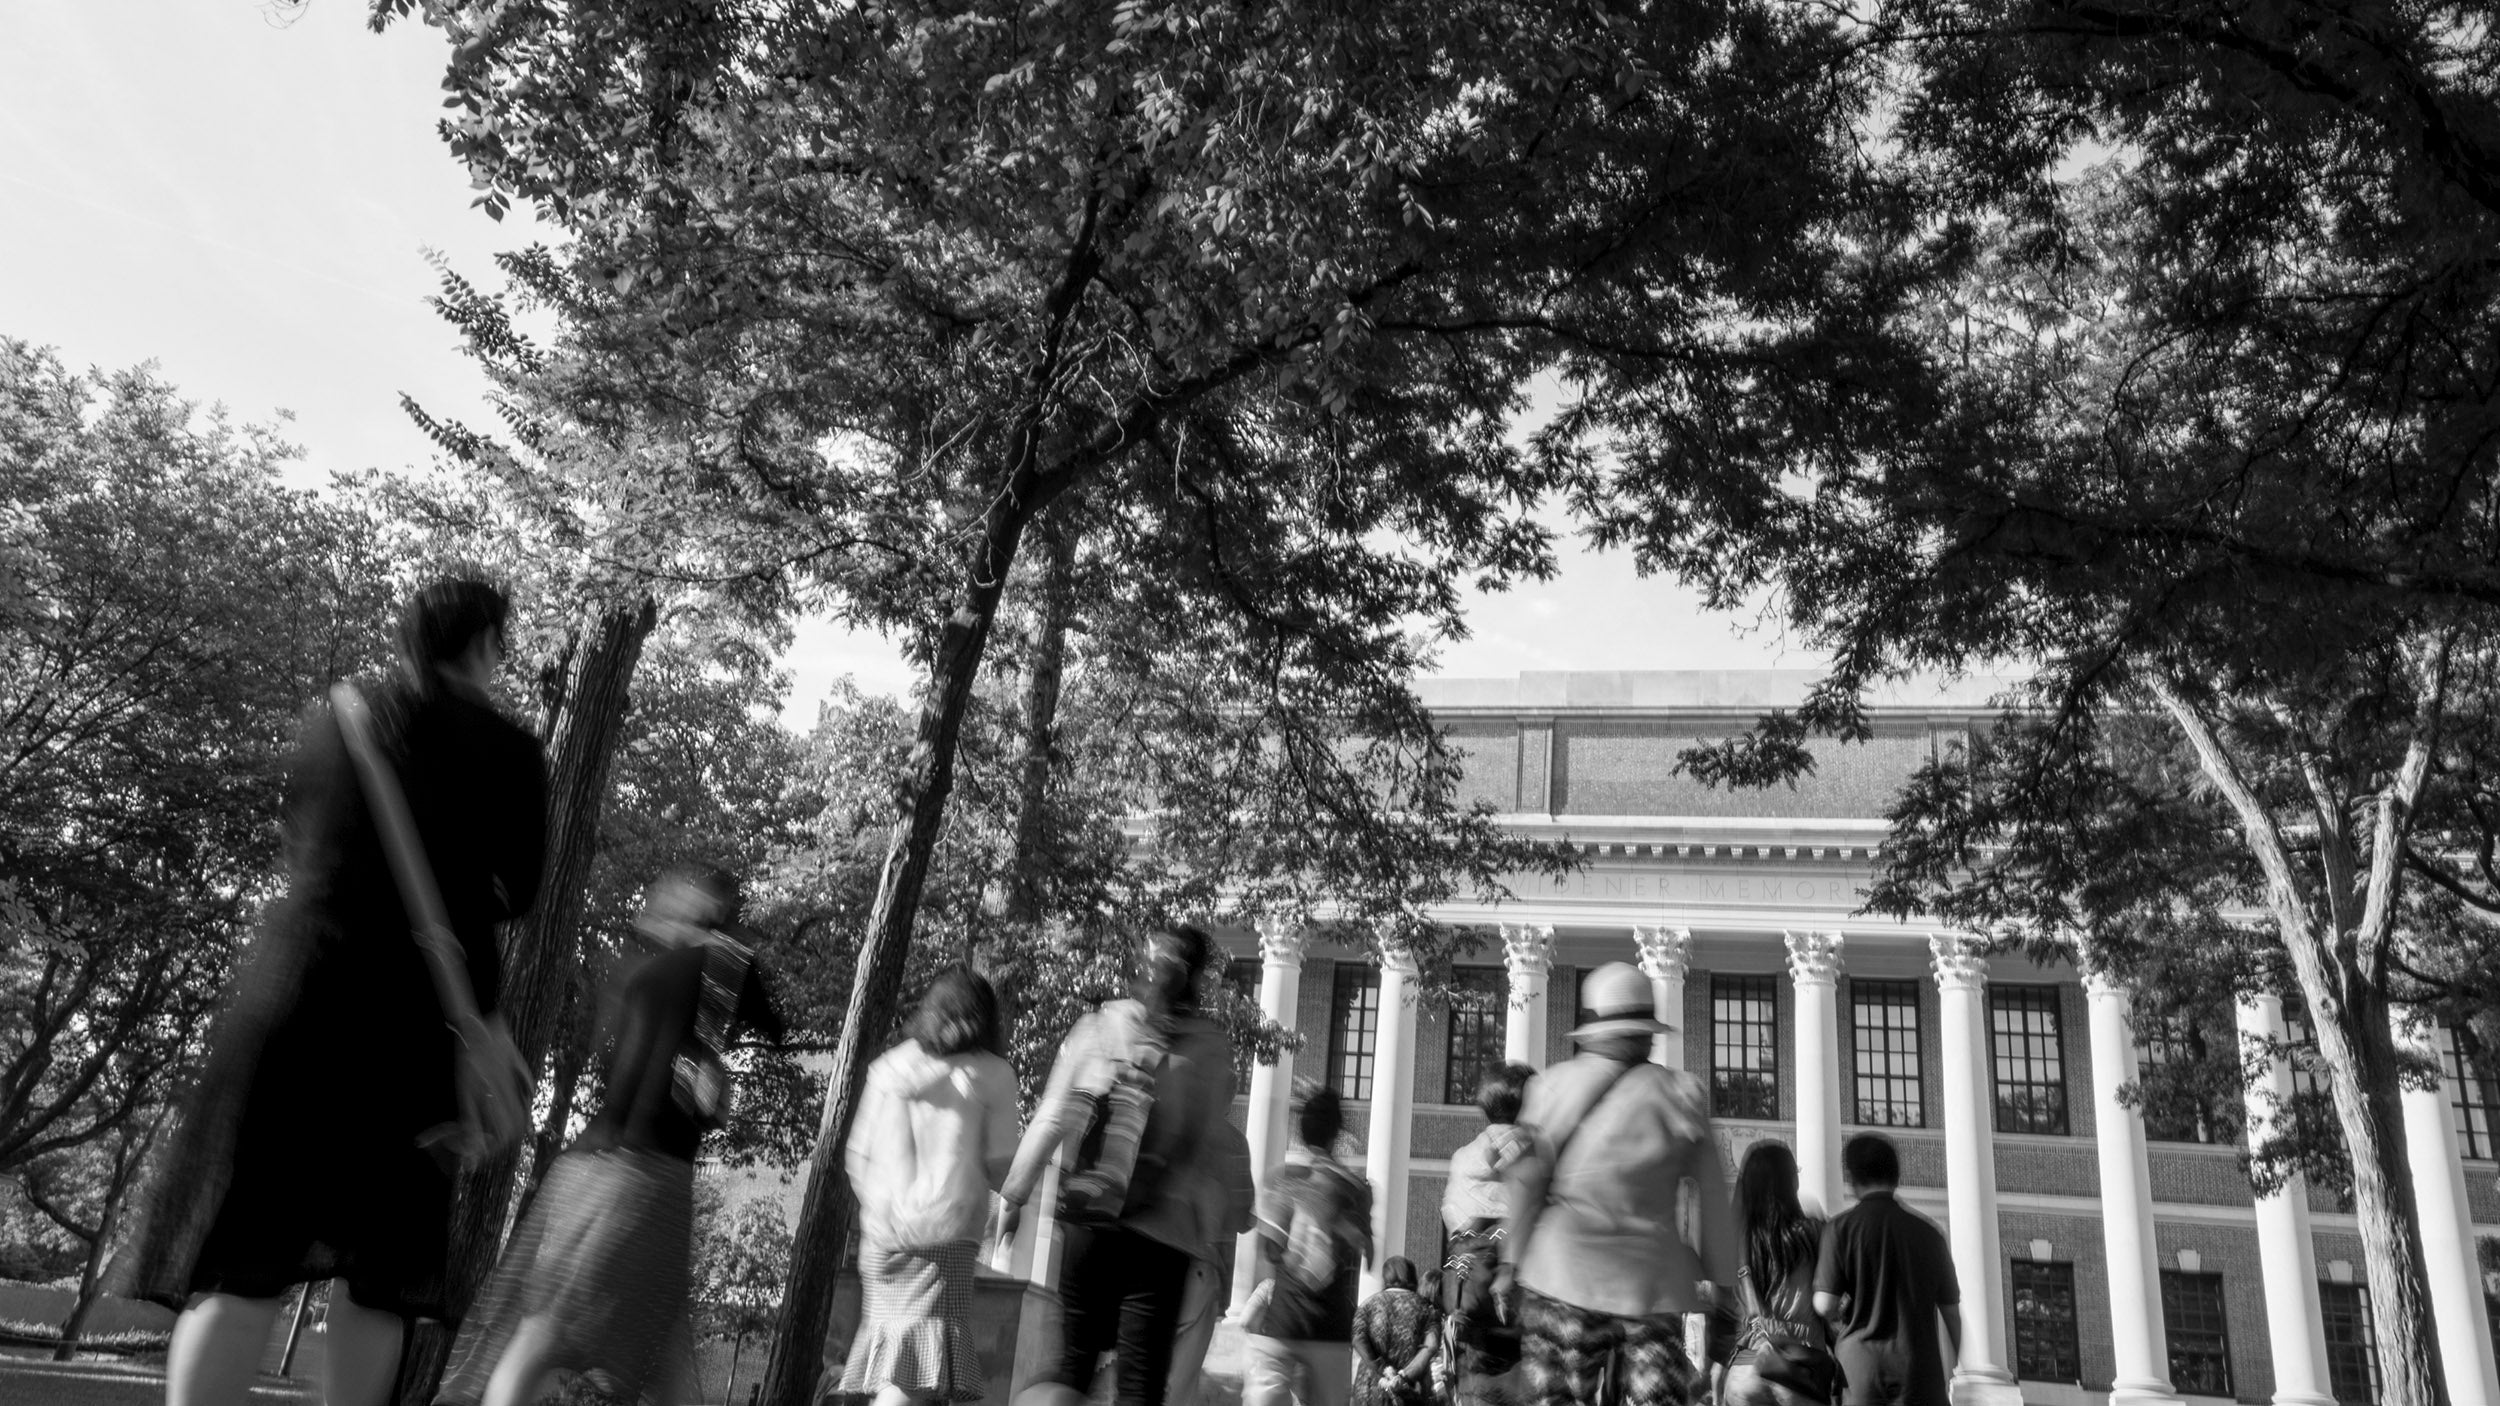 Visitors walk the path from Memorial Church toward Widener Library.